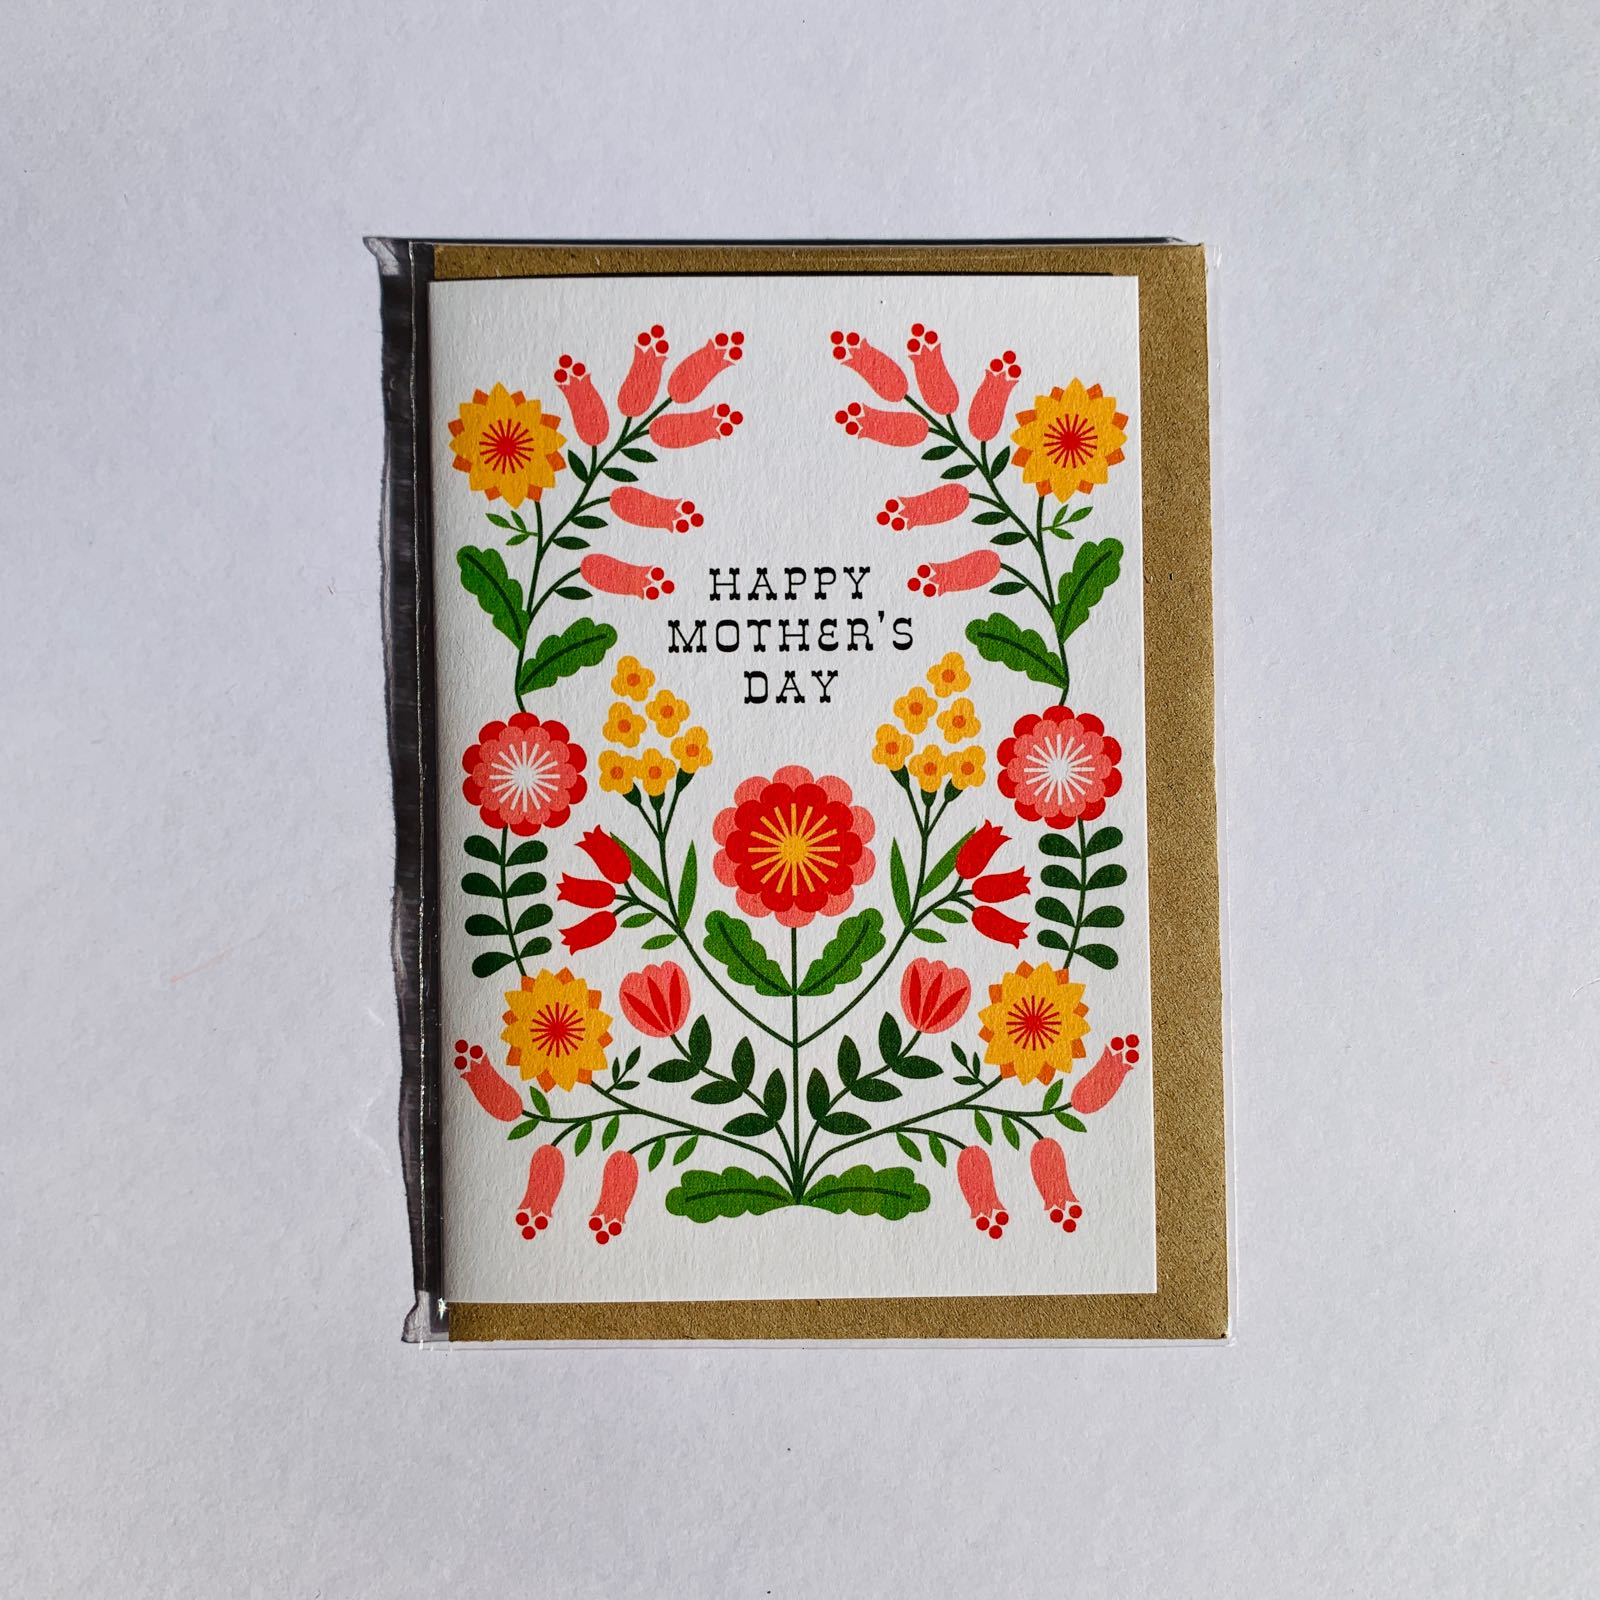 MaggieMagoo Designs - 'Bright Folk Floral' Mother's Day Card